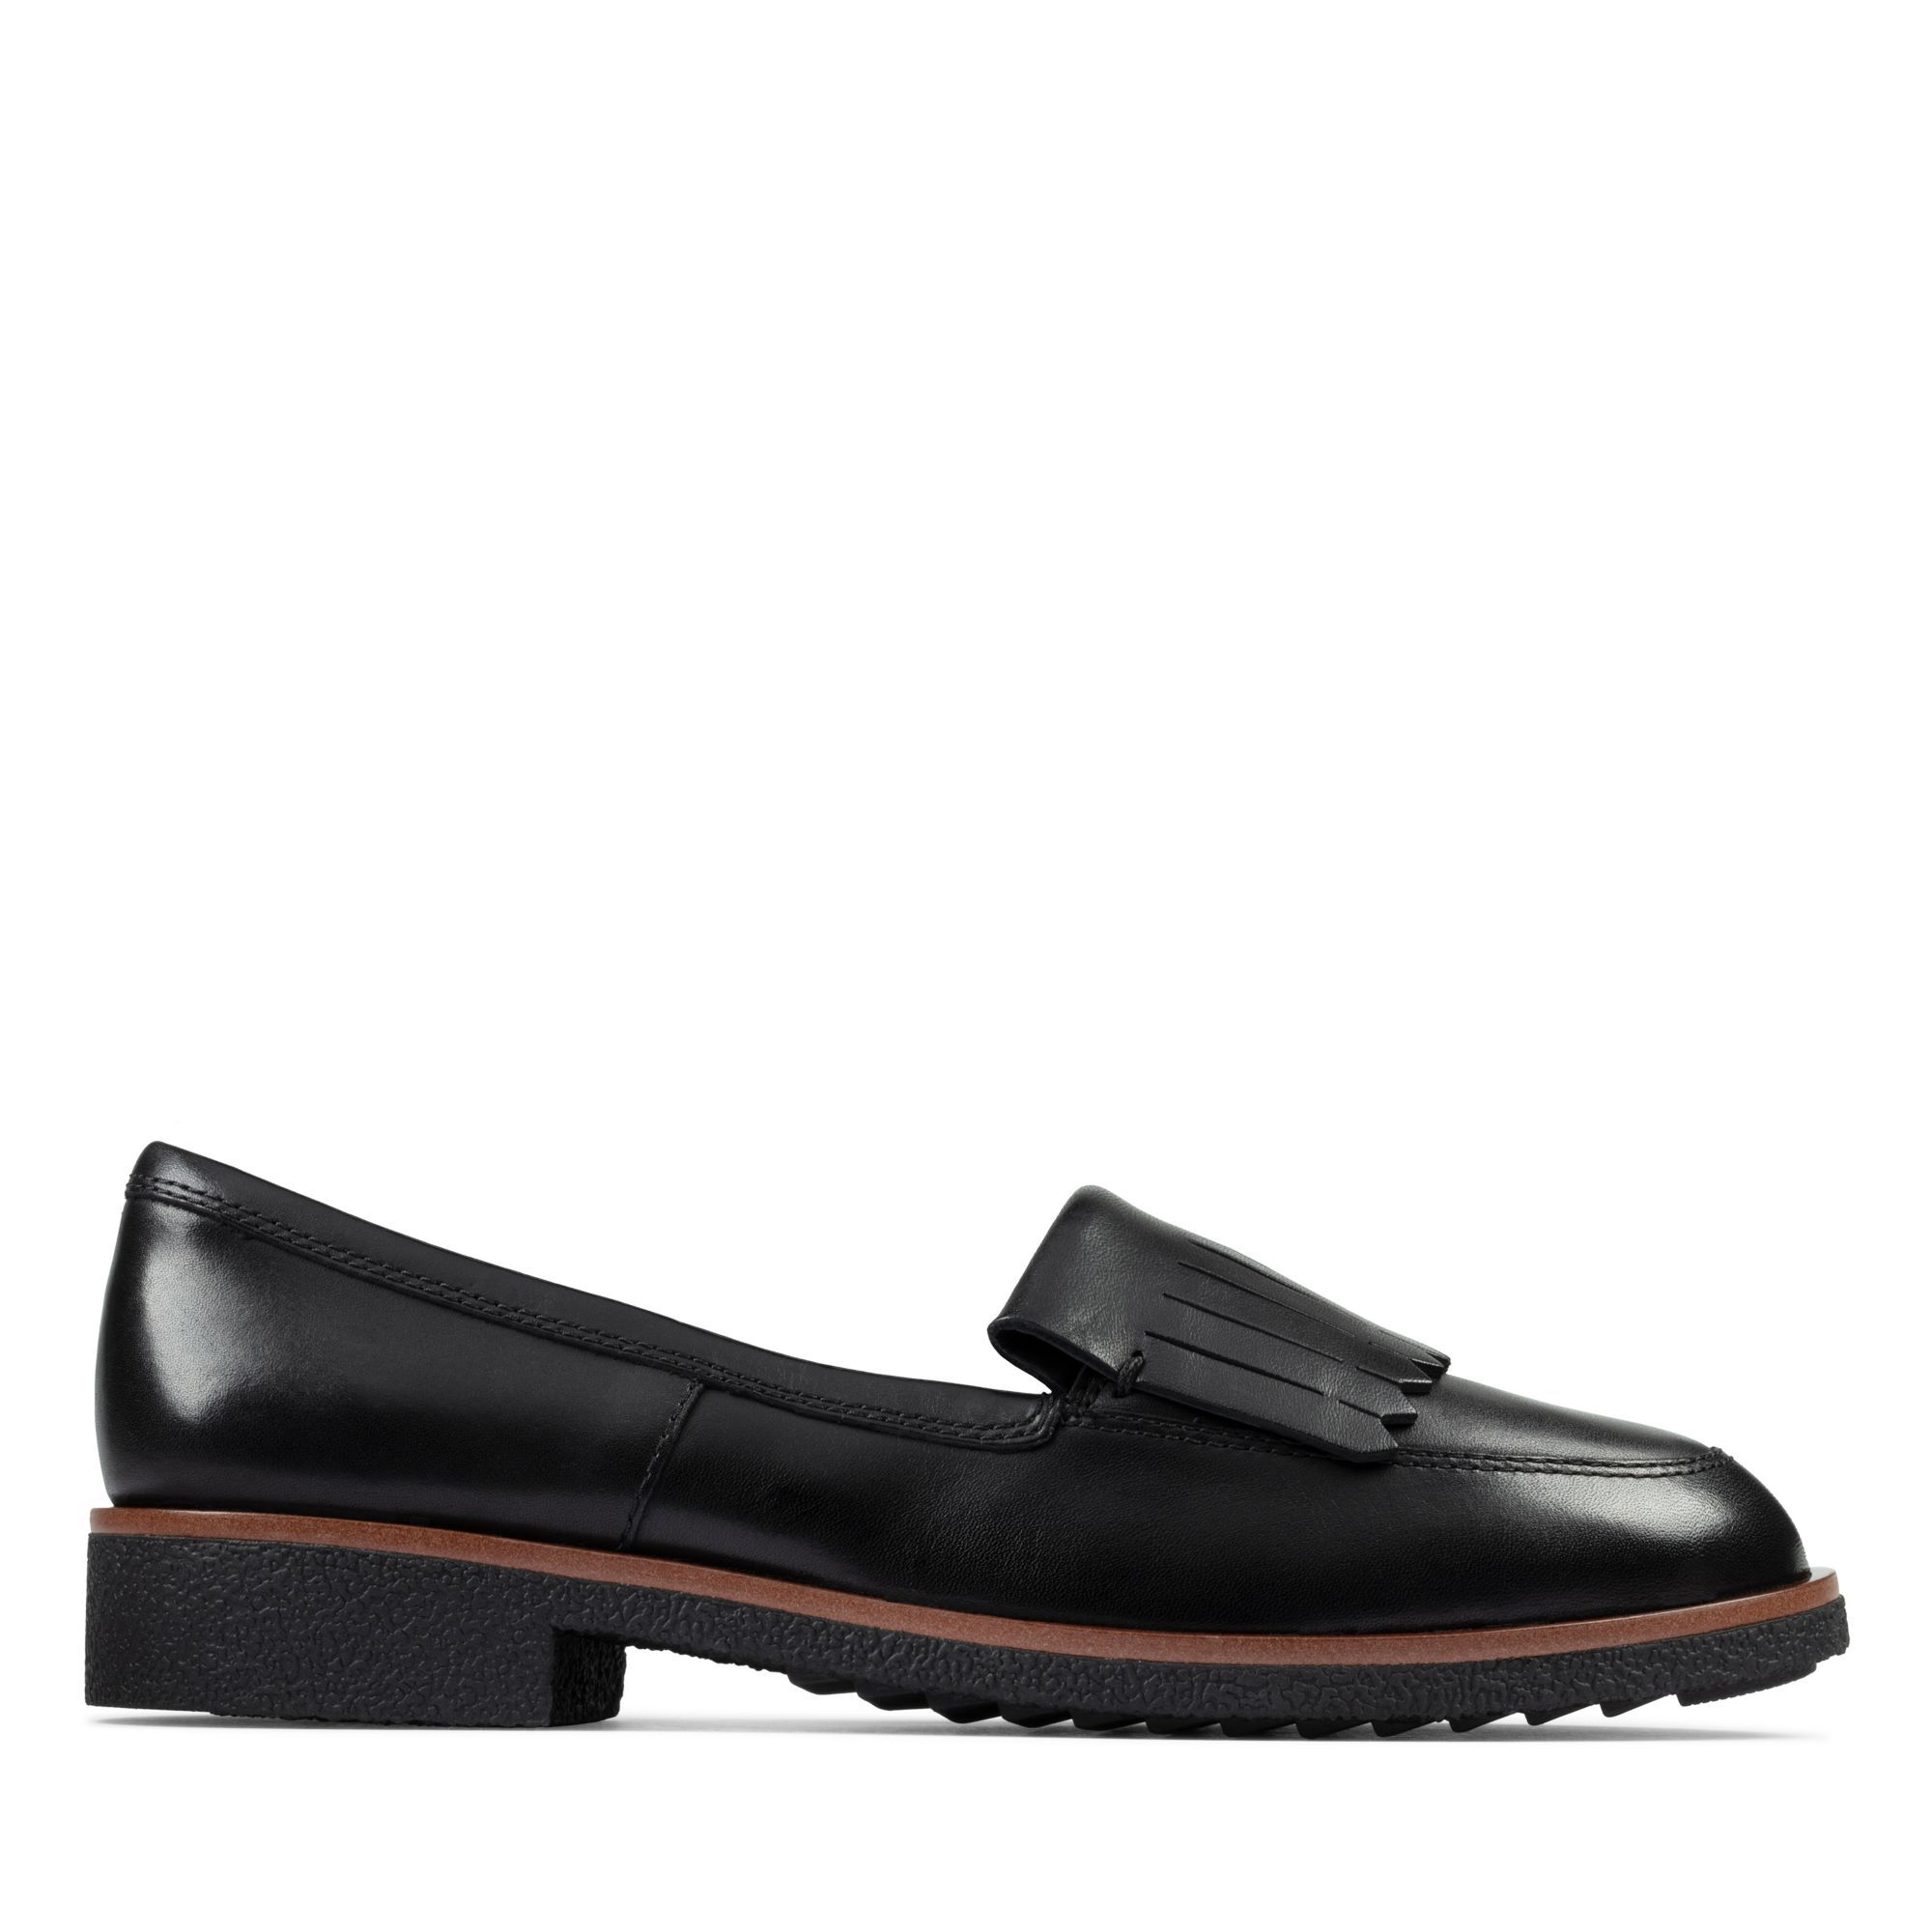 Women's Loafers Shoes   Clarks